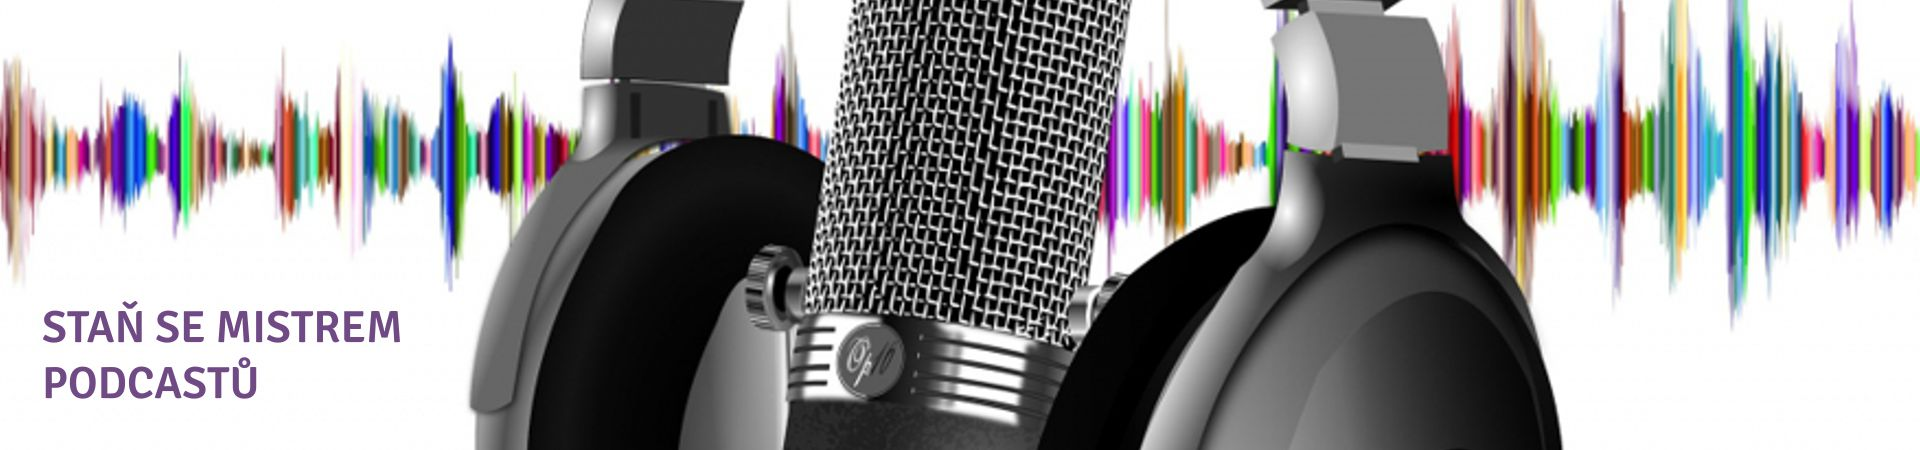 Banner_web_podcast